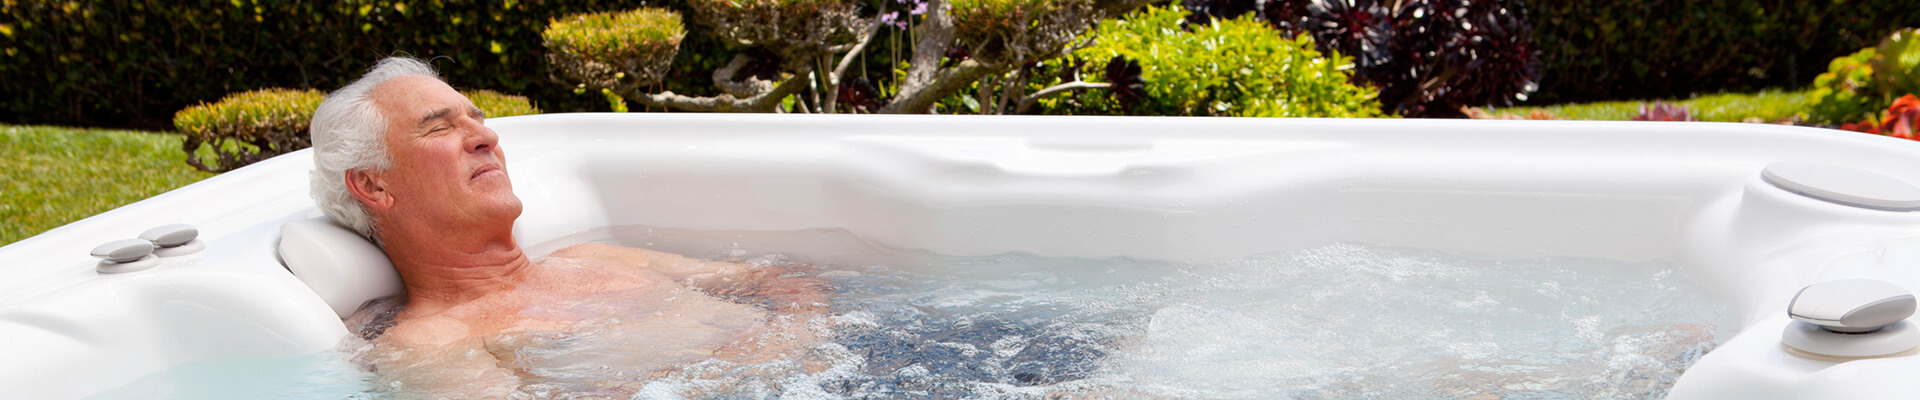 Soak Your Way to a Healthy Heart in a Minneapolis Backyard Spa, Hot Tubs MN